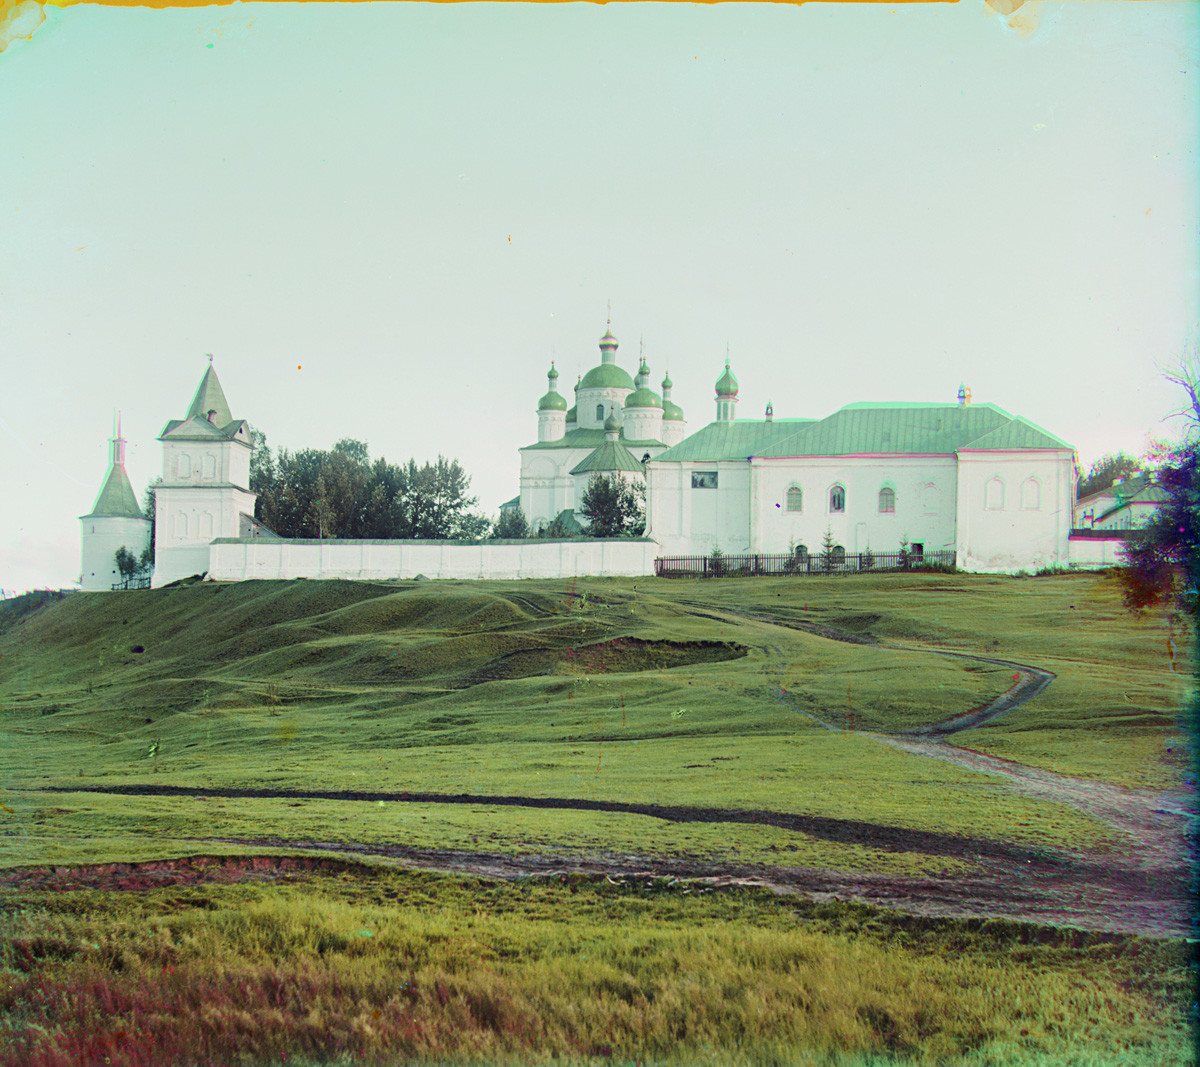 Luzhetsky Monastery. North view from bank of Moscow River. From left: North wall & gate, Nativity Cathedral, Church of the Presentation with refectory. Summer 1911.